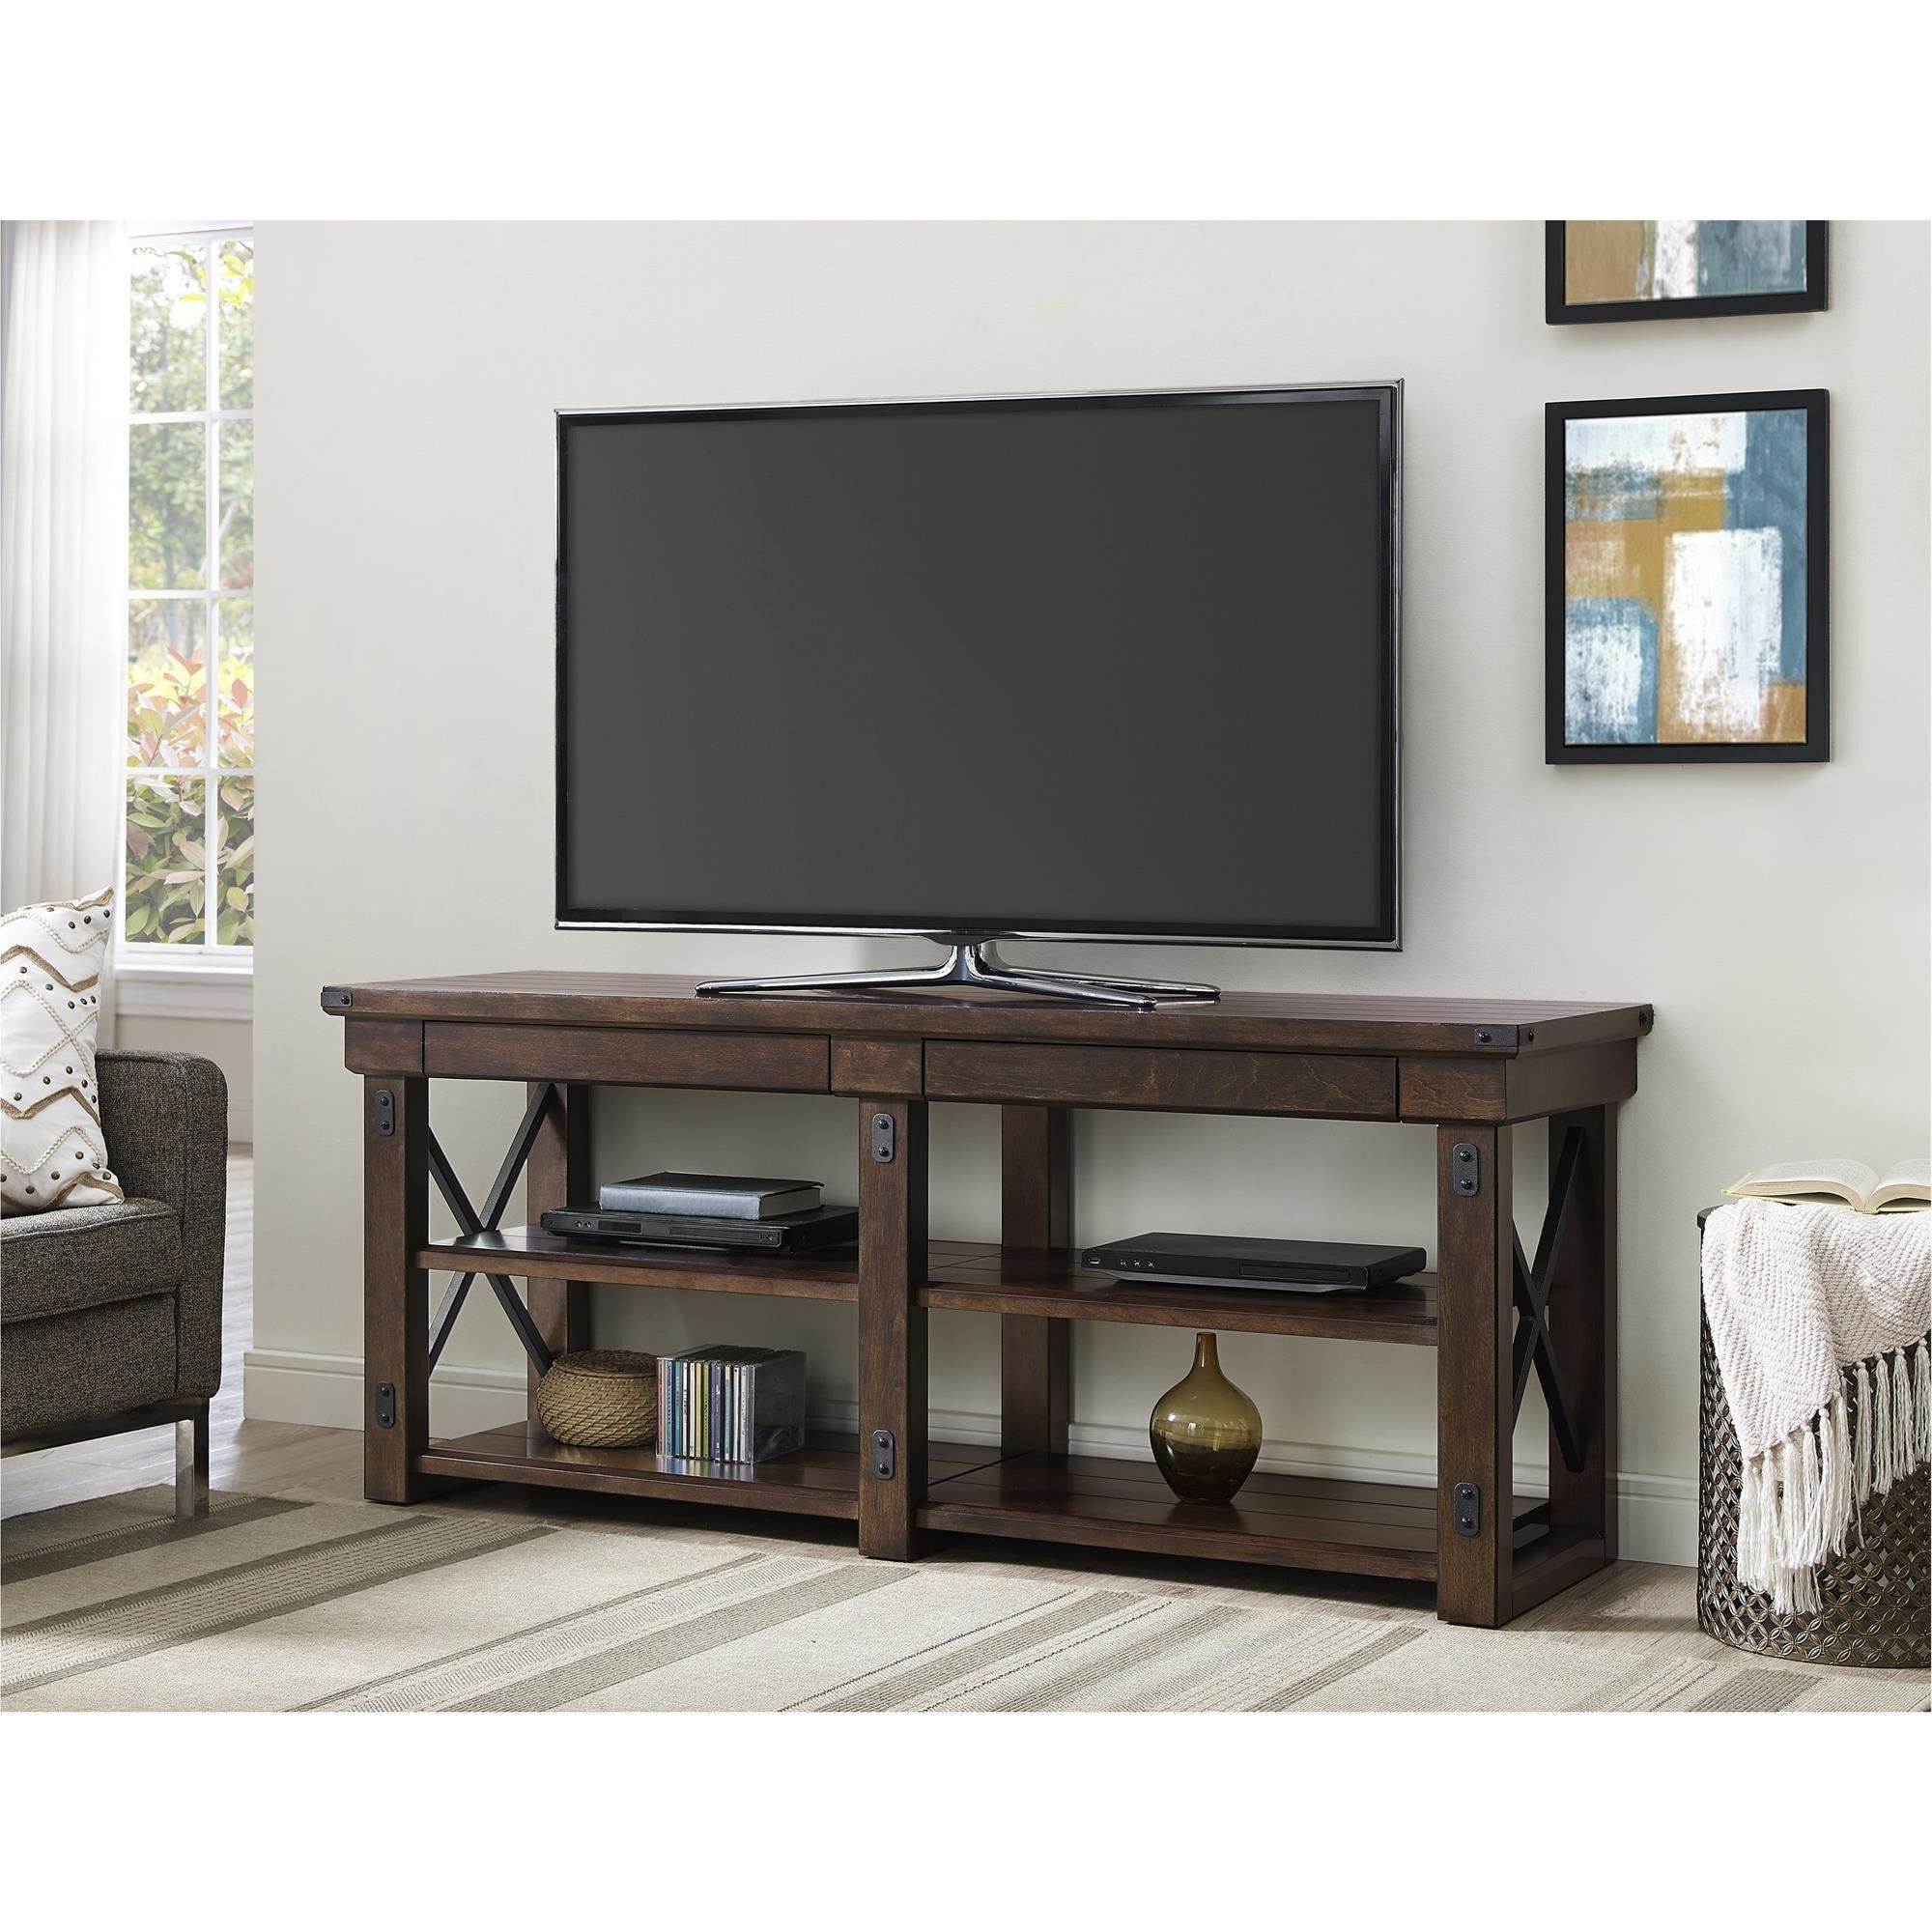 65 Inch Tv Stands With Integrated Mount Throughout Well Known Ameriwood Home Wildwood Mahogany Veneer 65 Inch Tv Stand (65 Inch Tv (Gallery 7 of 20)